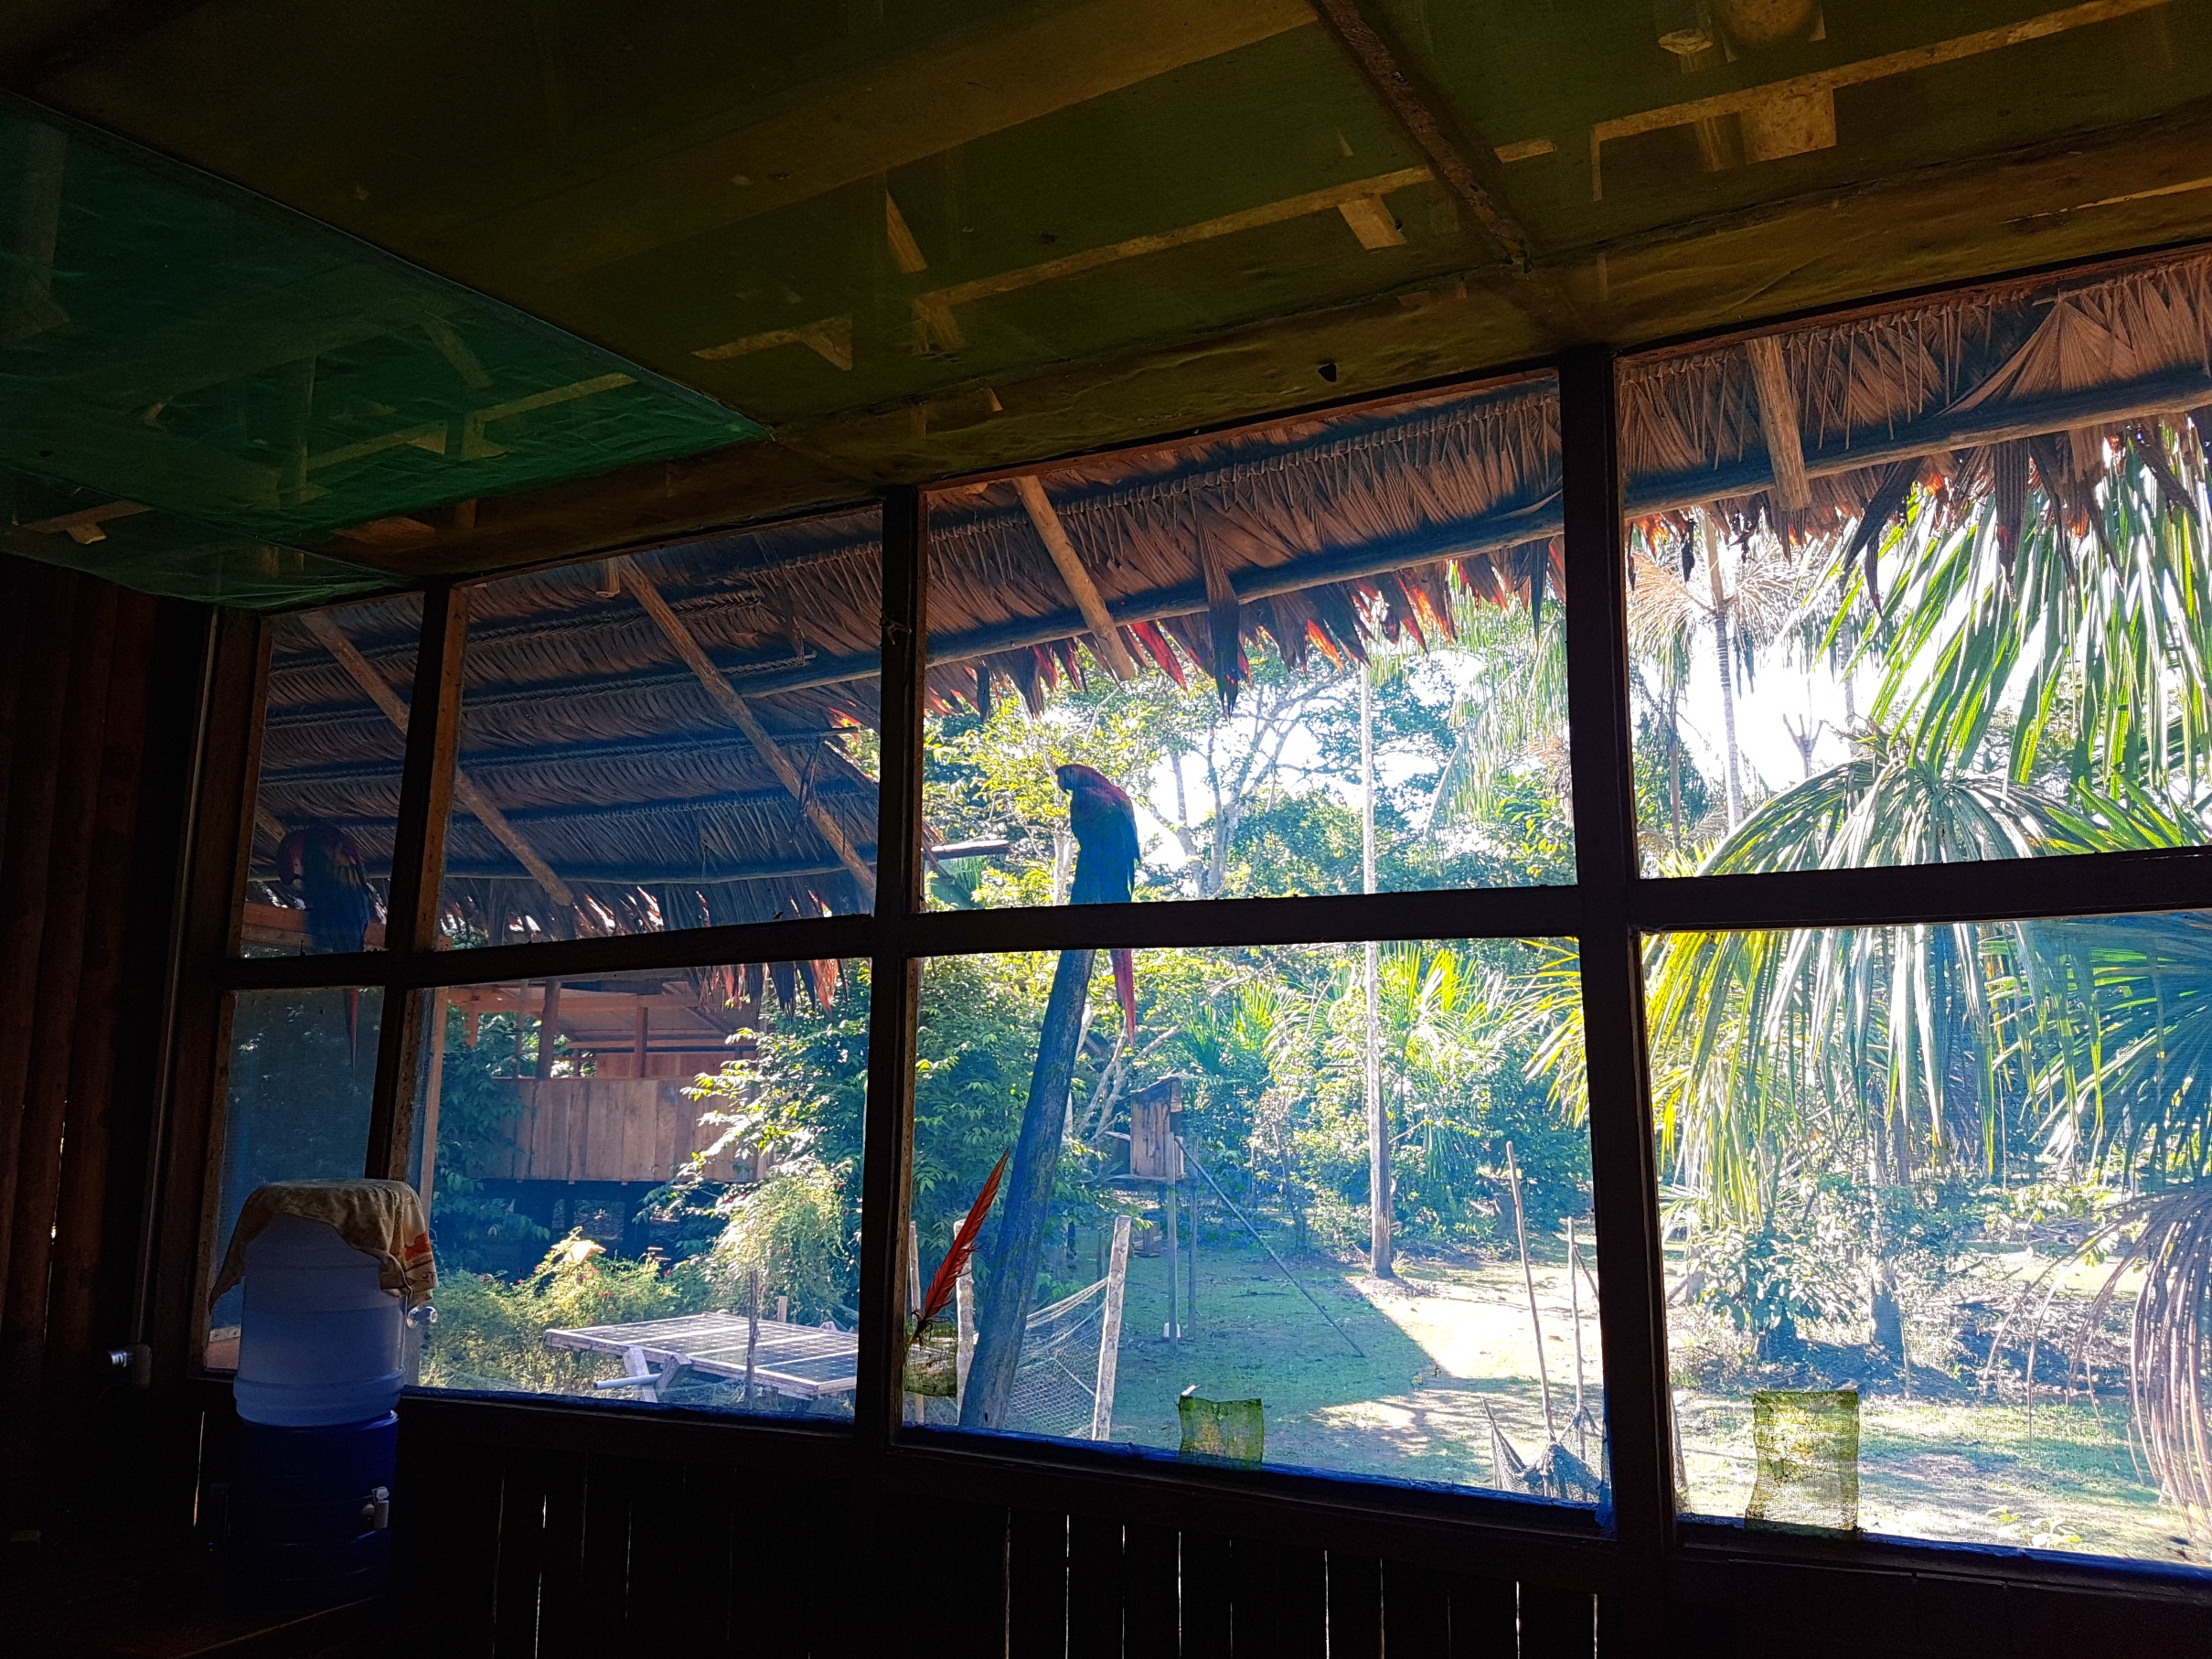 Looking through the dinning room.